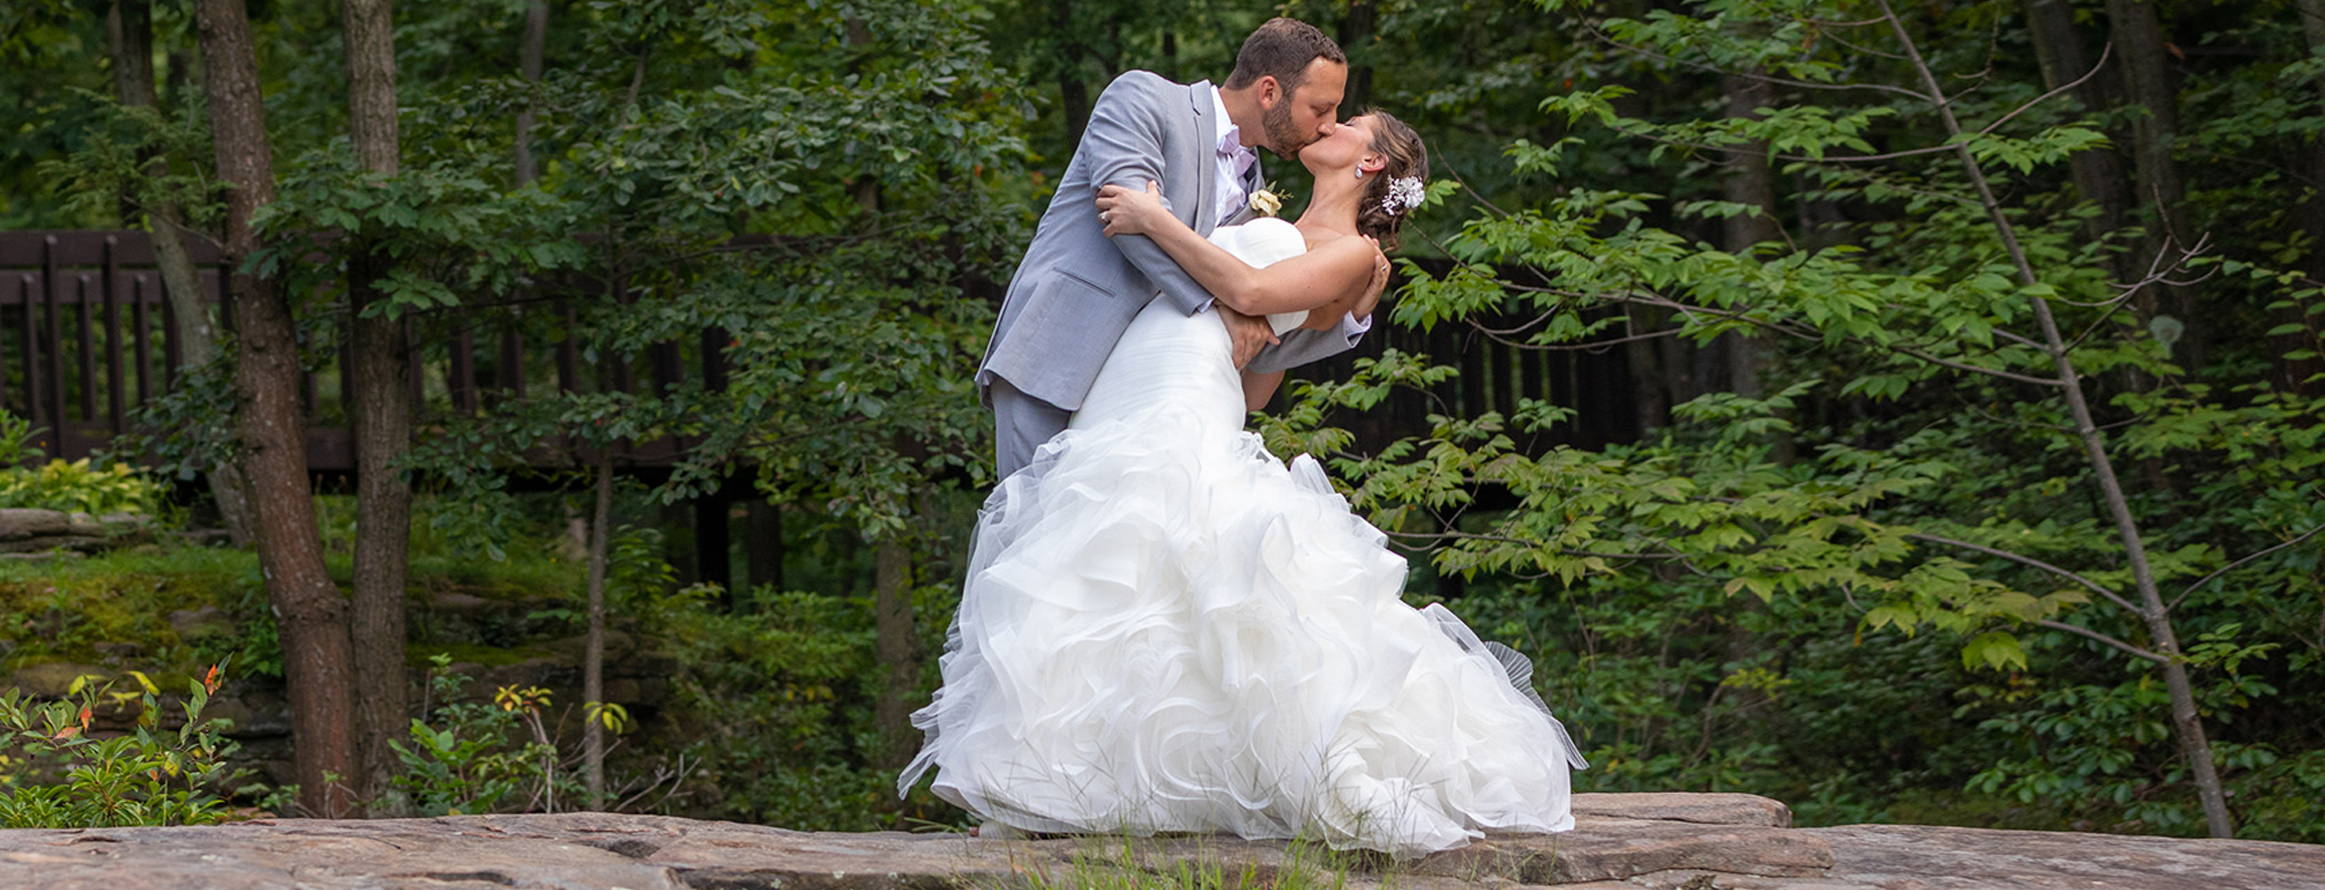 Experience a<br><strong>Woodlands Wedding</strong>